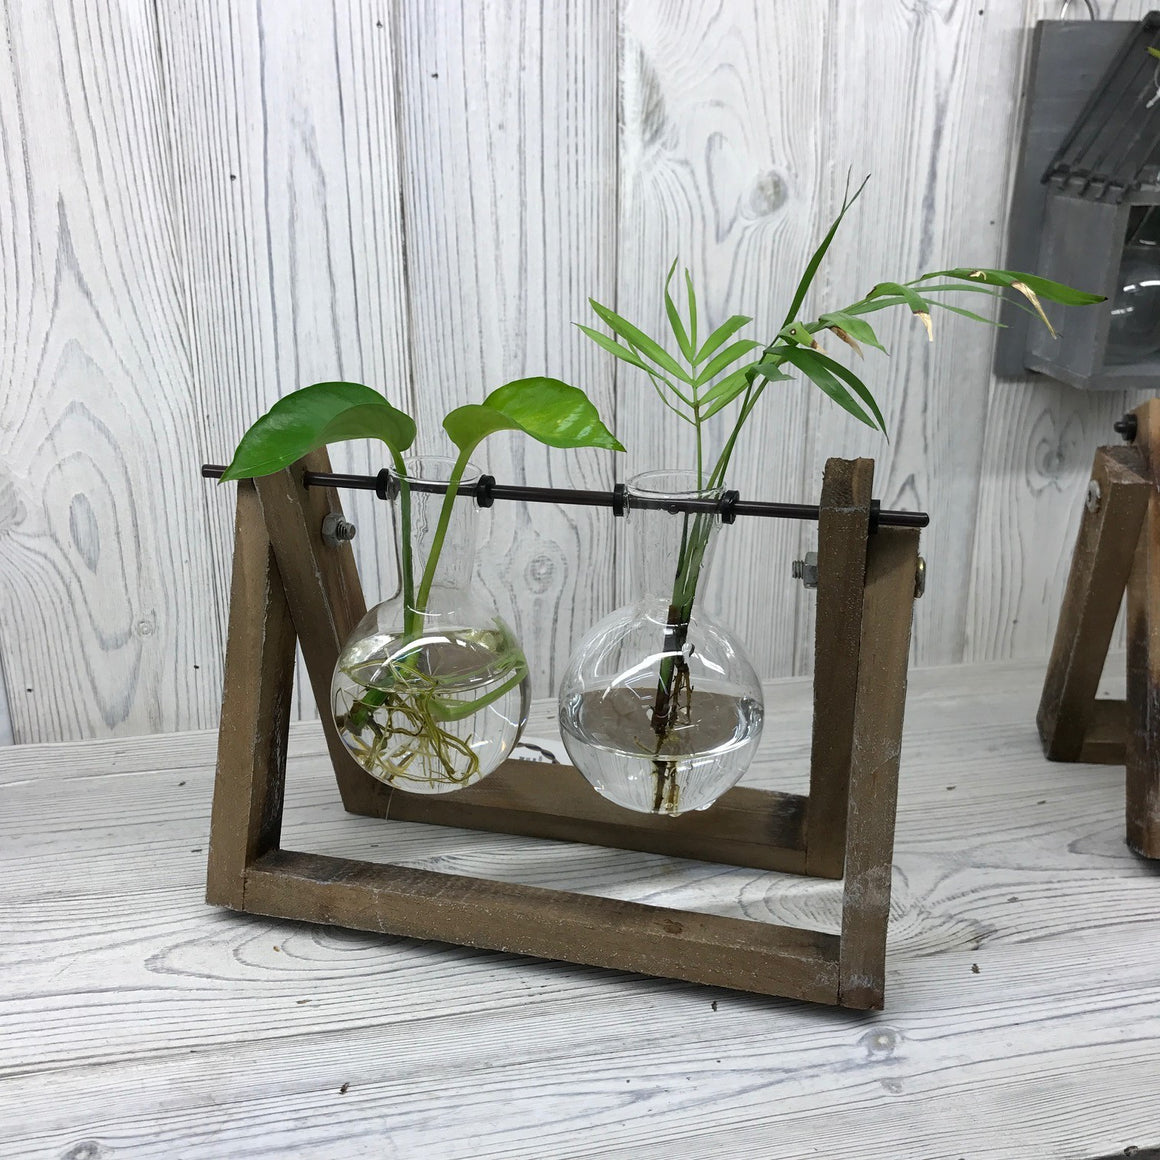 Hydroponic Home Decor - Two Pots Wooden Stand